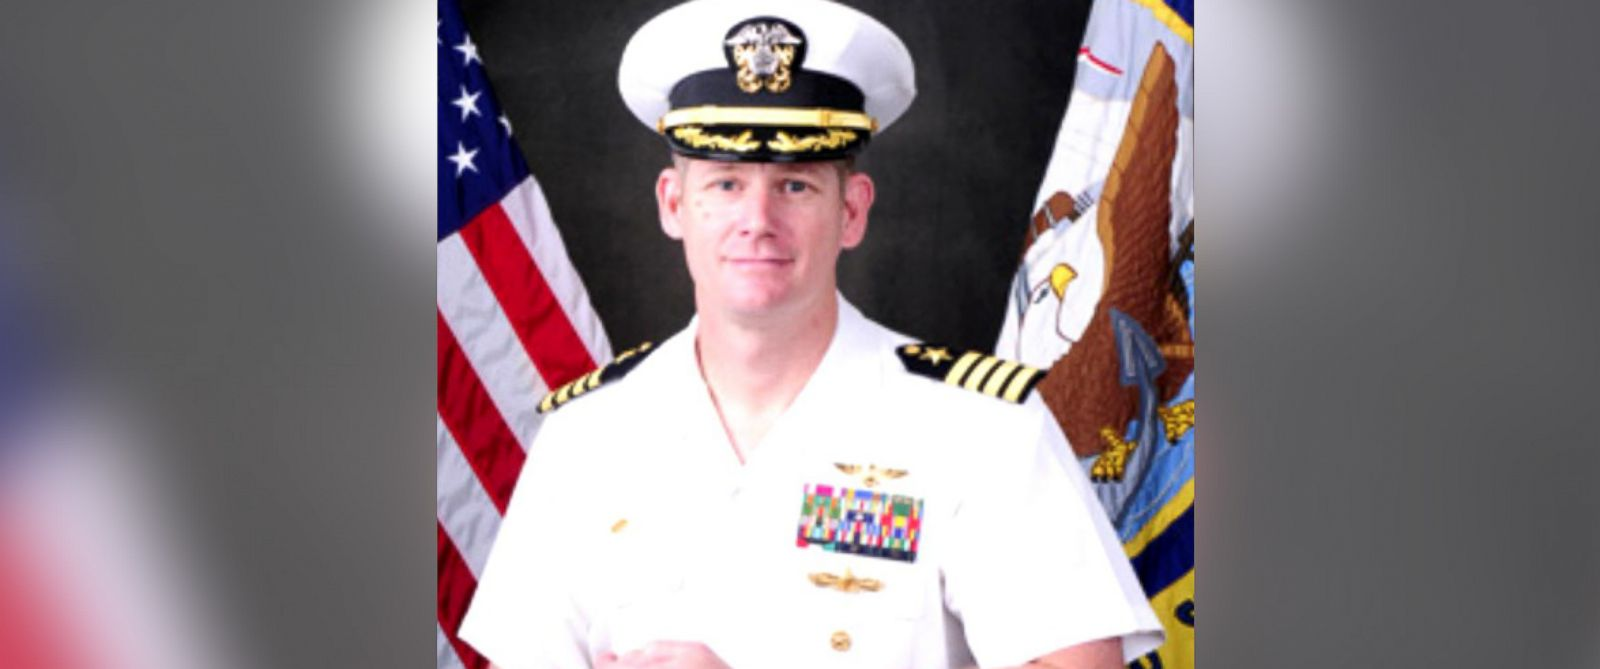 PHOTO: Navy Captain John Nettleton was relieved of command, Jan. 21, 2015, amid an investigation by the Naval Criminal Investigative Service.